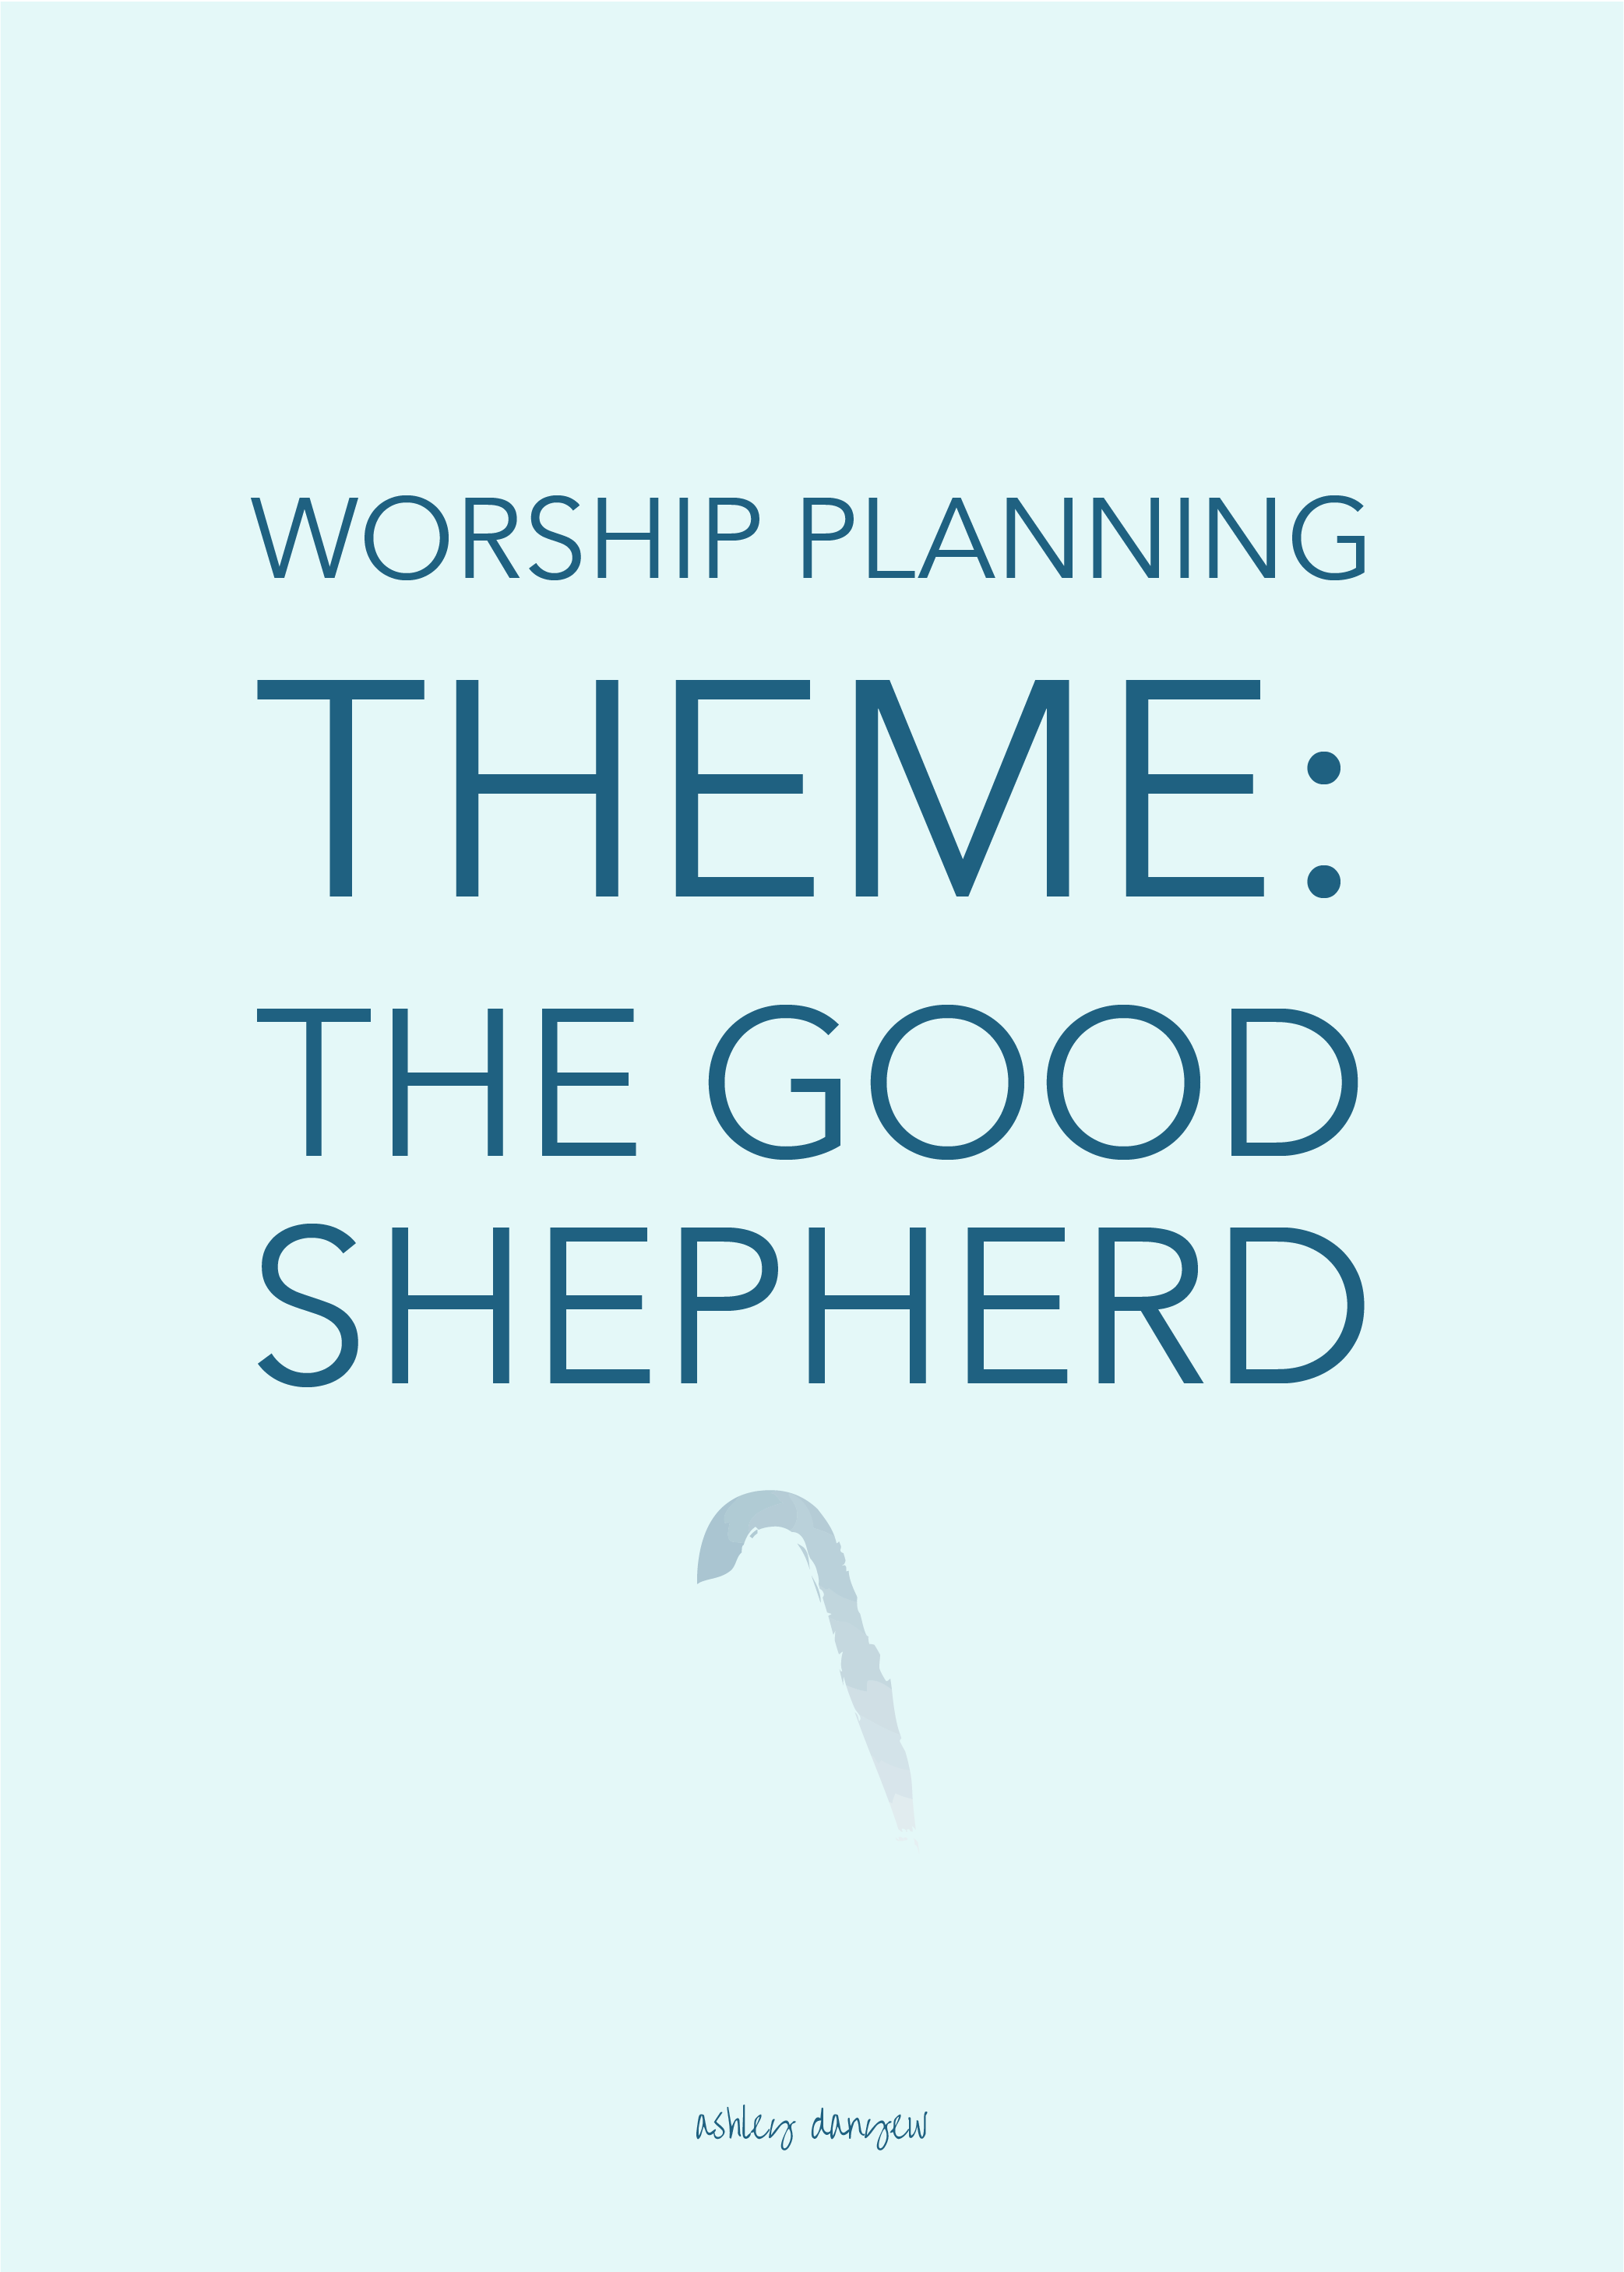 Copy of Worship Planning Theme: The Good Shepherd